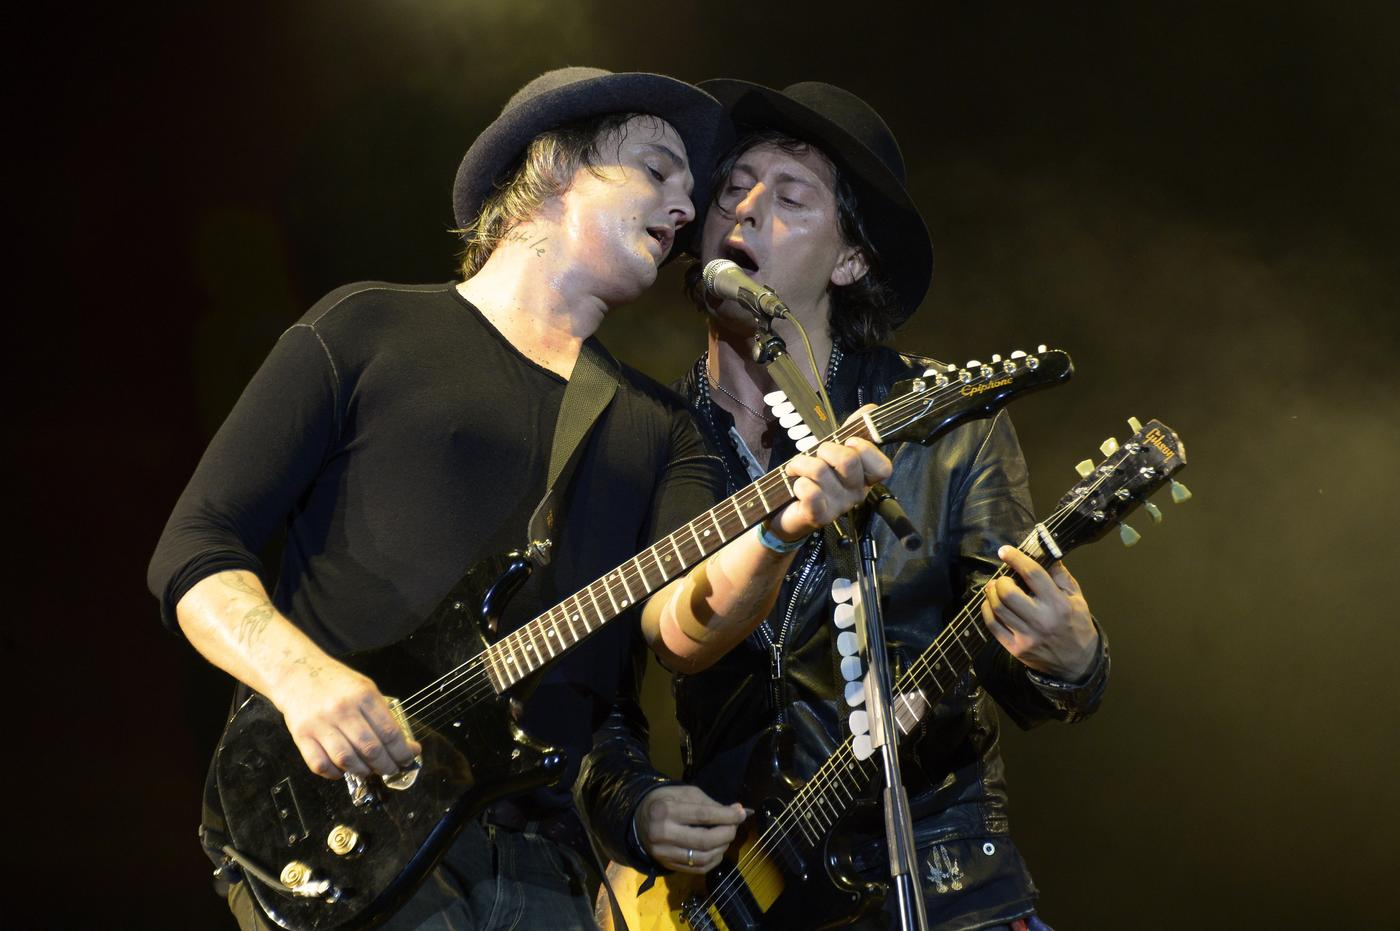 The Libertines say Pete Doherty is 'safe and okay' after postponing gig due to 'medical situation'